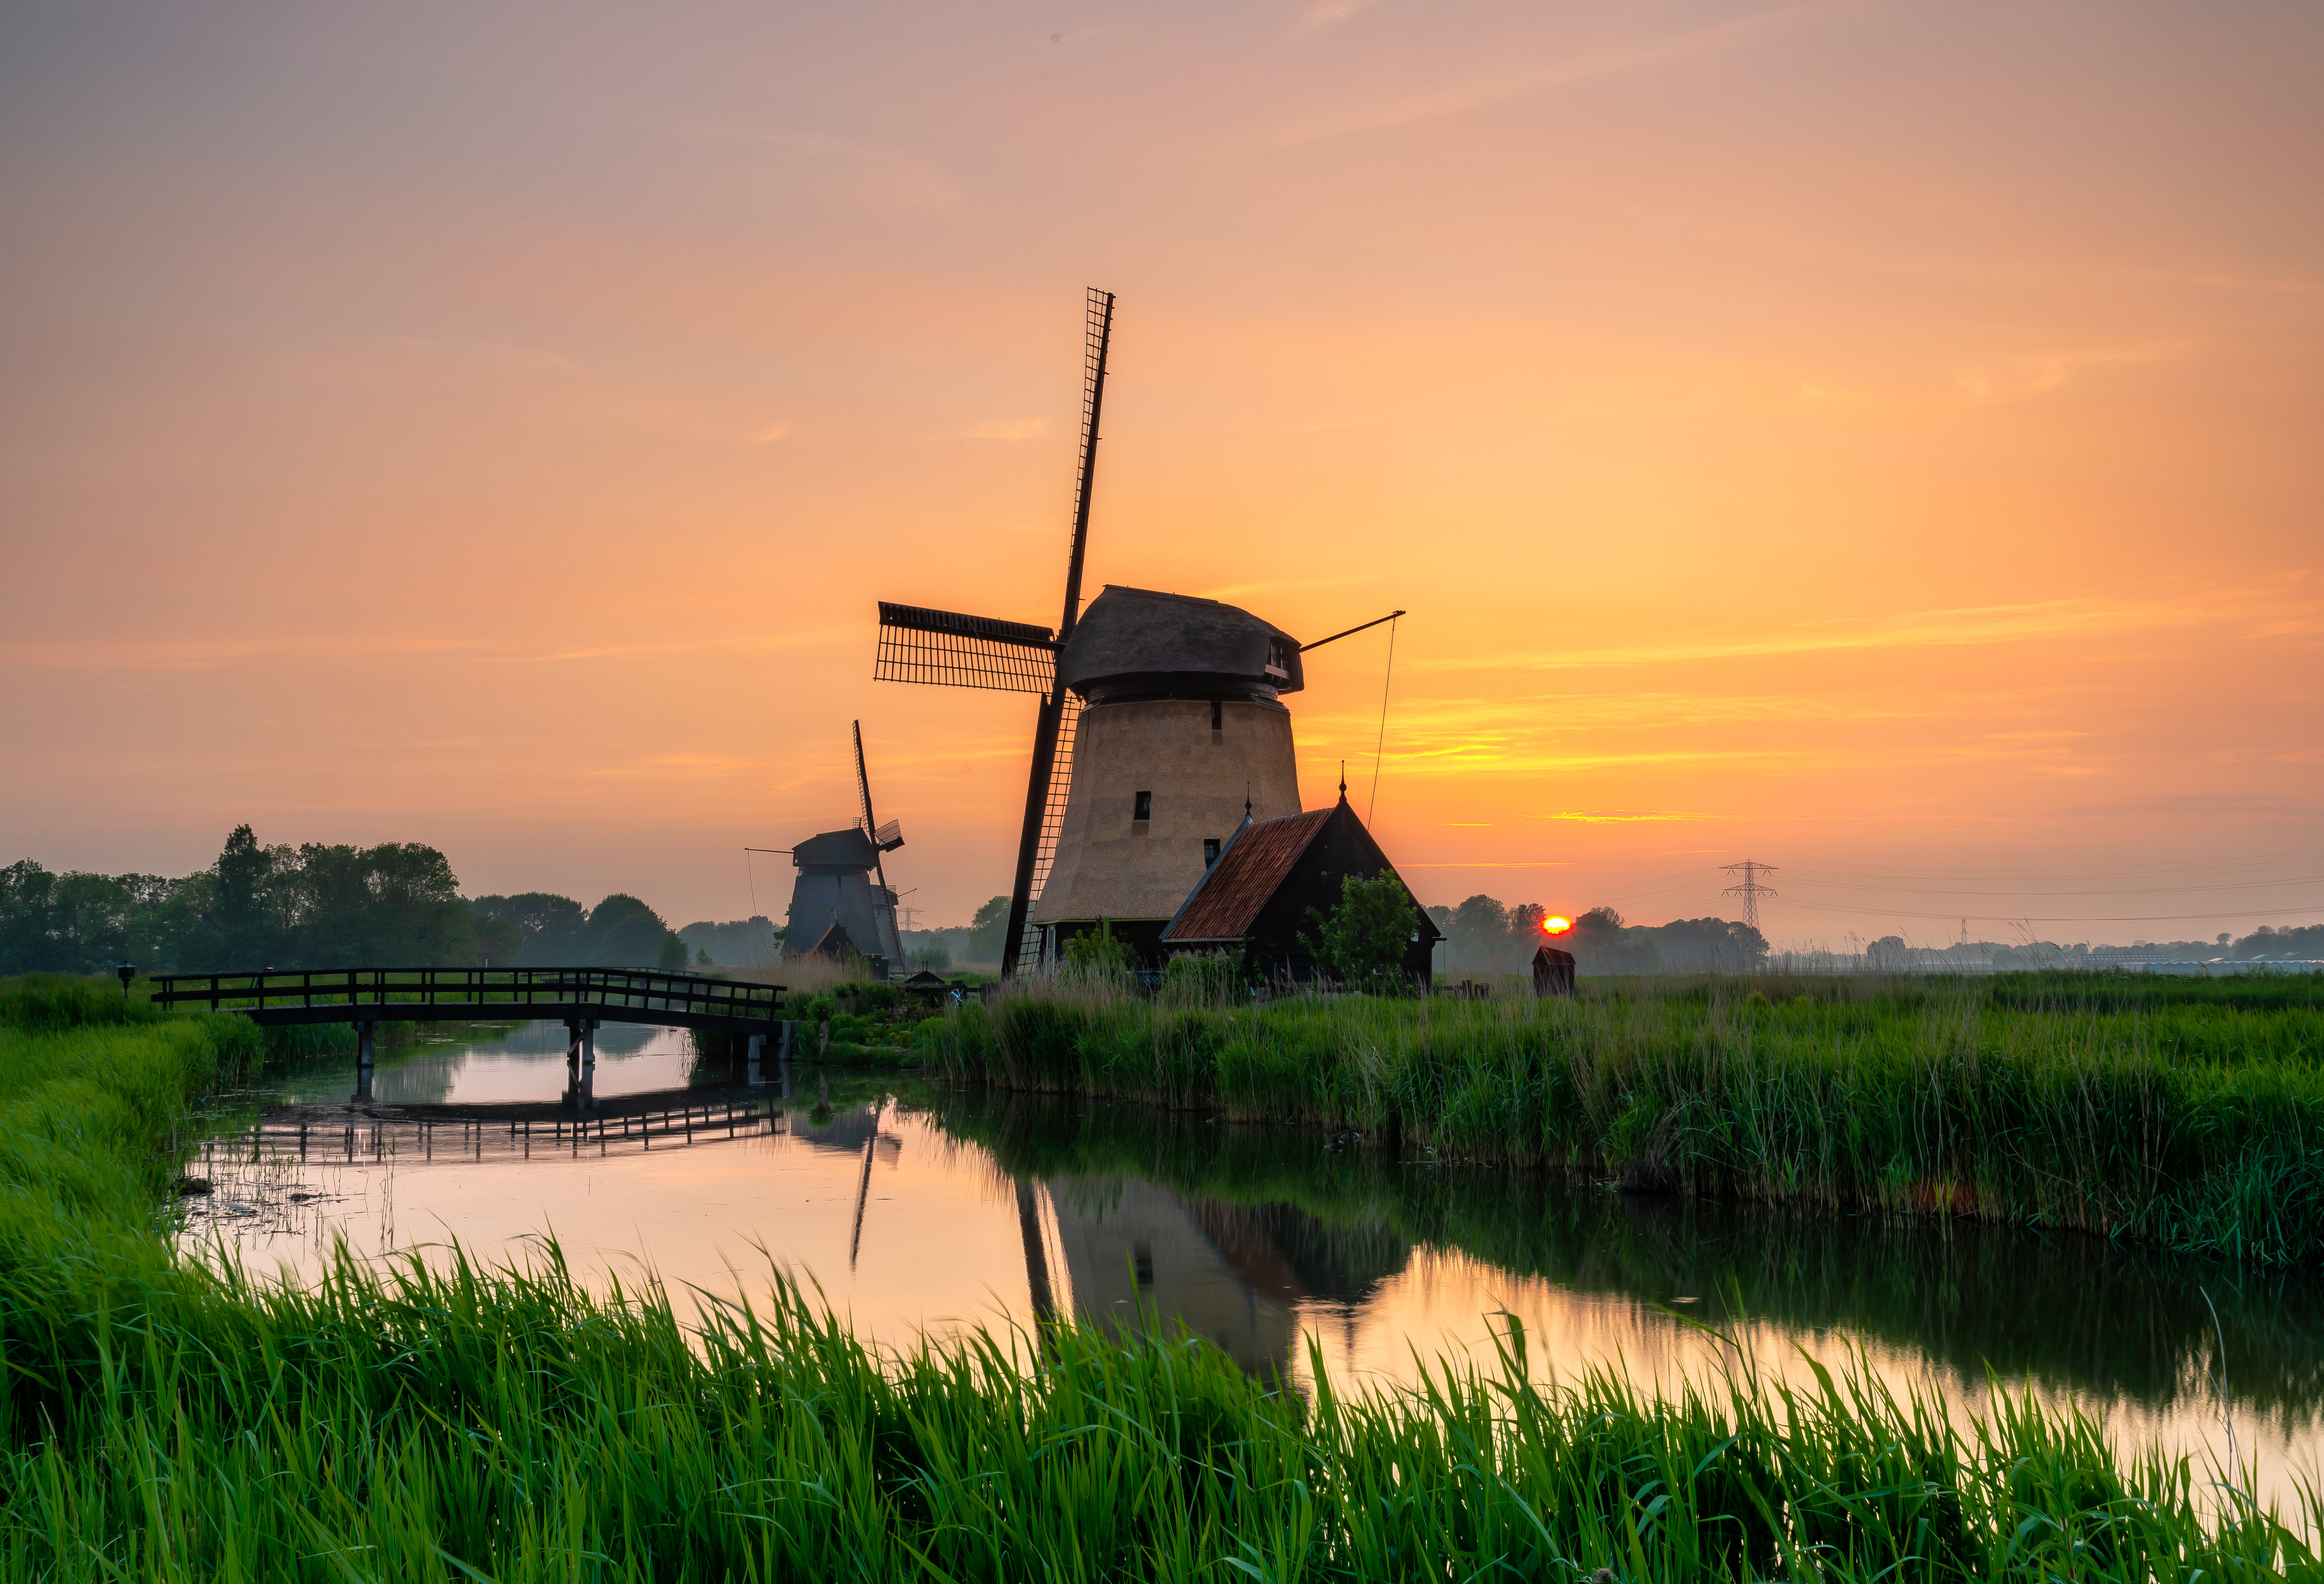 Download mobile wallpaper Nature, Rivers, Grass, Structure, Mill for free.